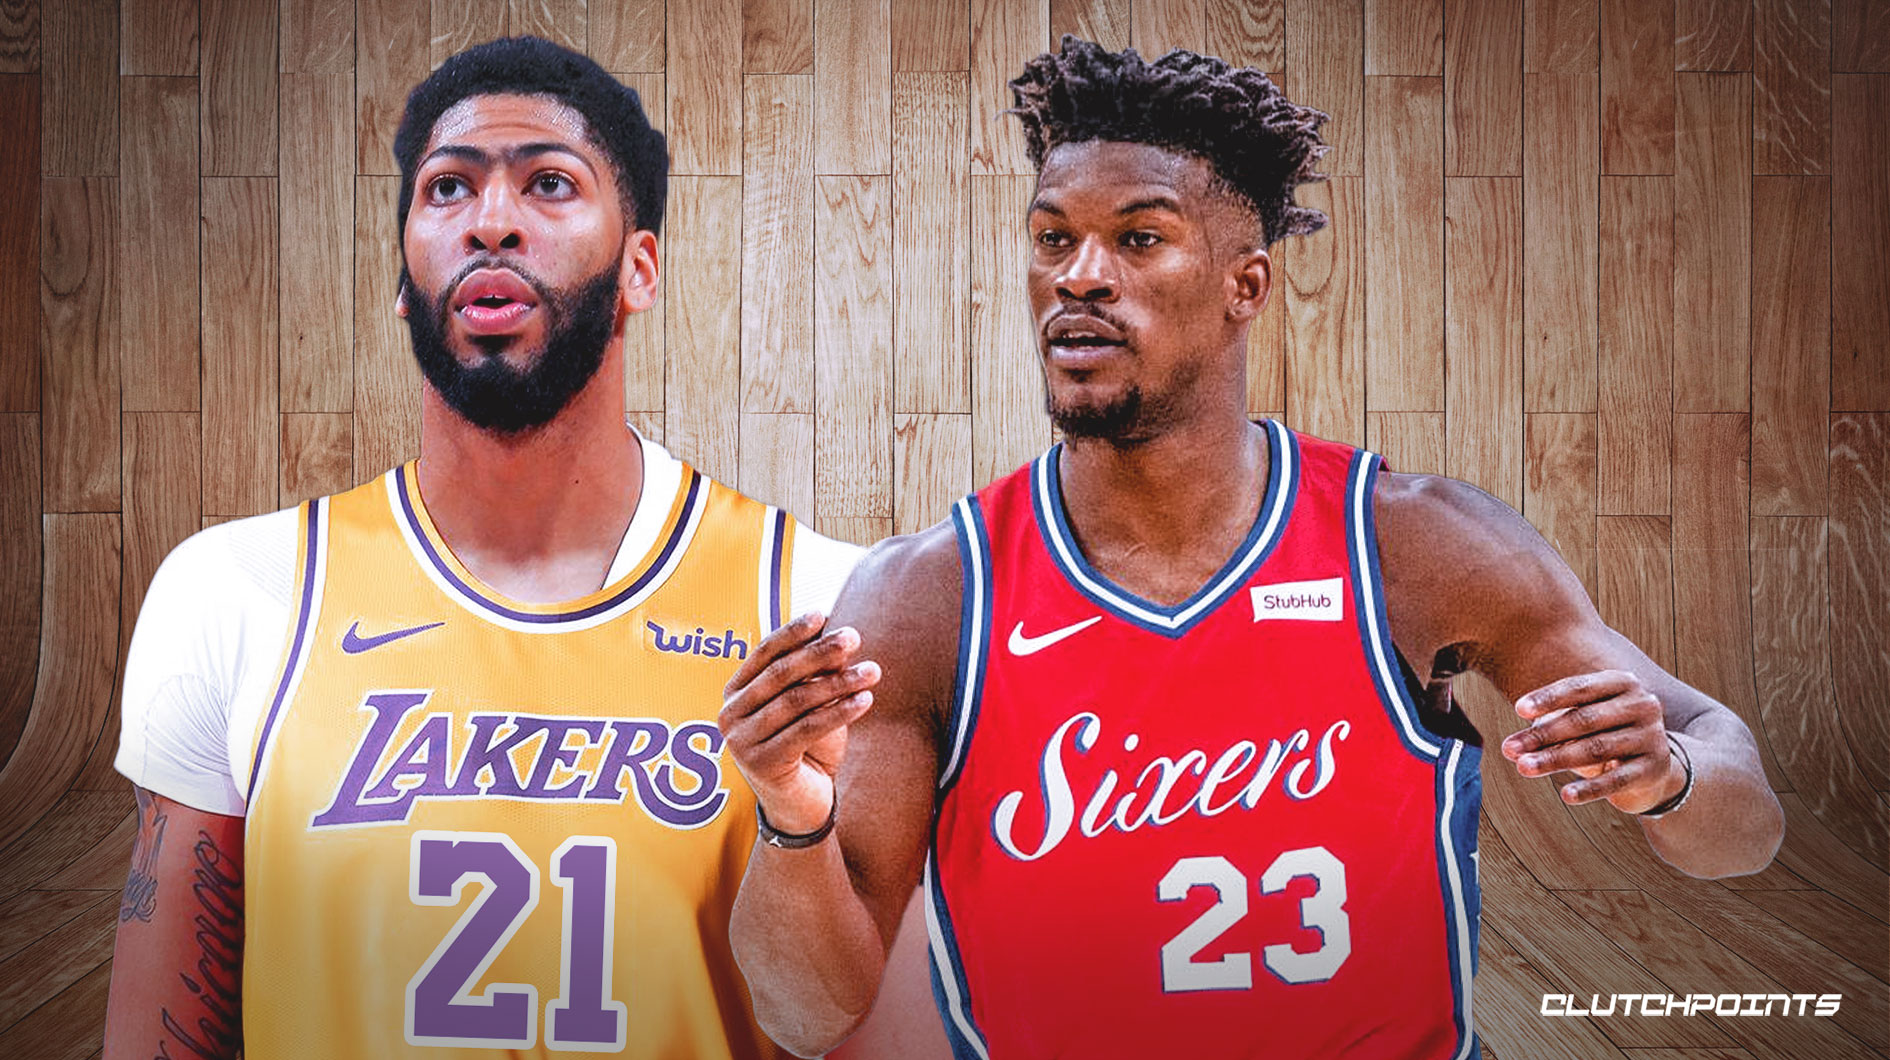 BAD NEWS FOR SIXERS? BUTLER LIKE DAVIS TO LAKERS! | Fast